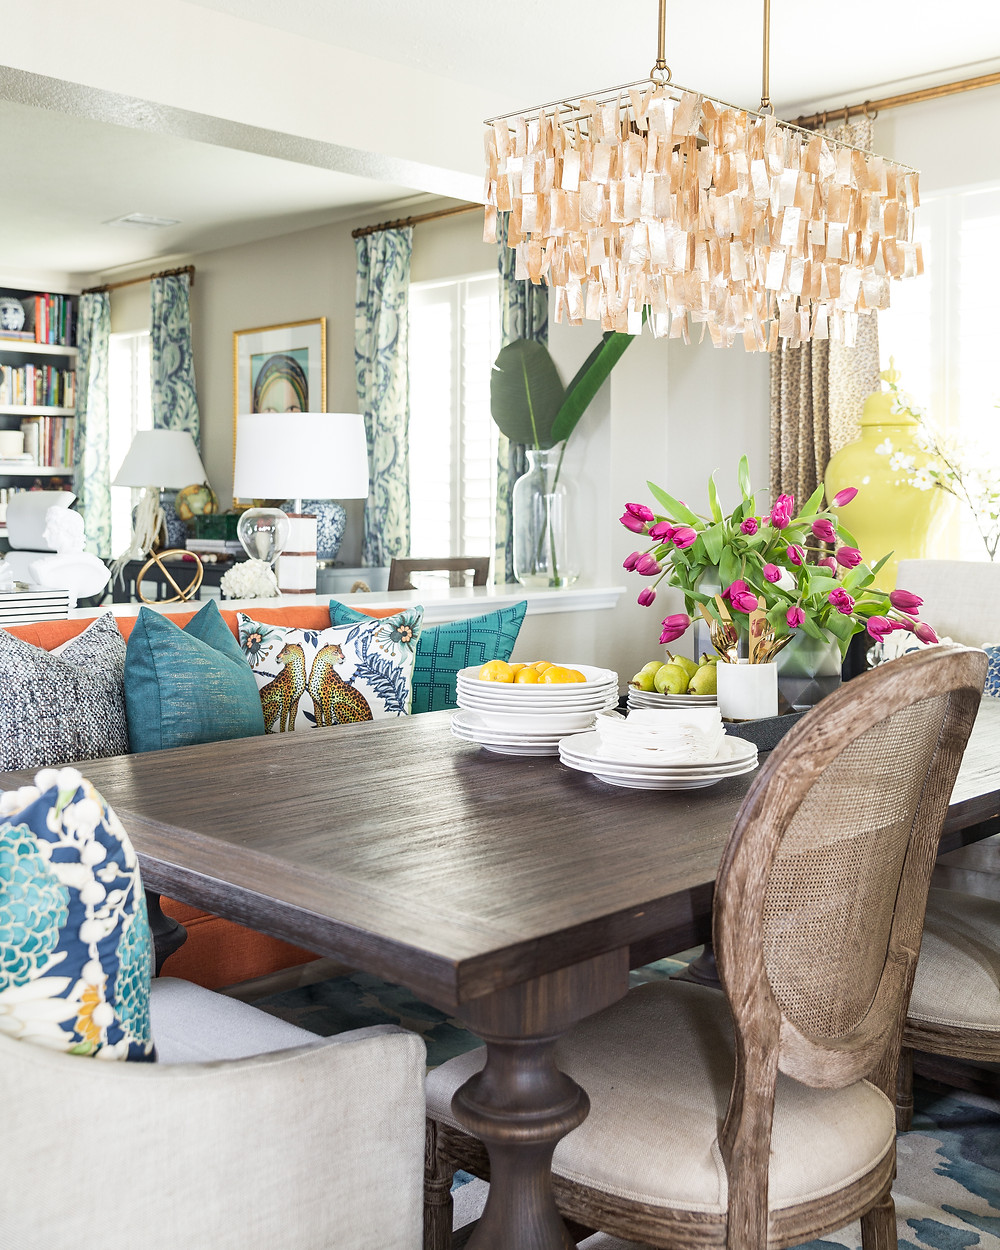 Dining Room Vignette With Bench And Pillows